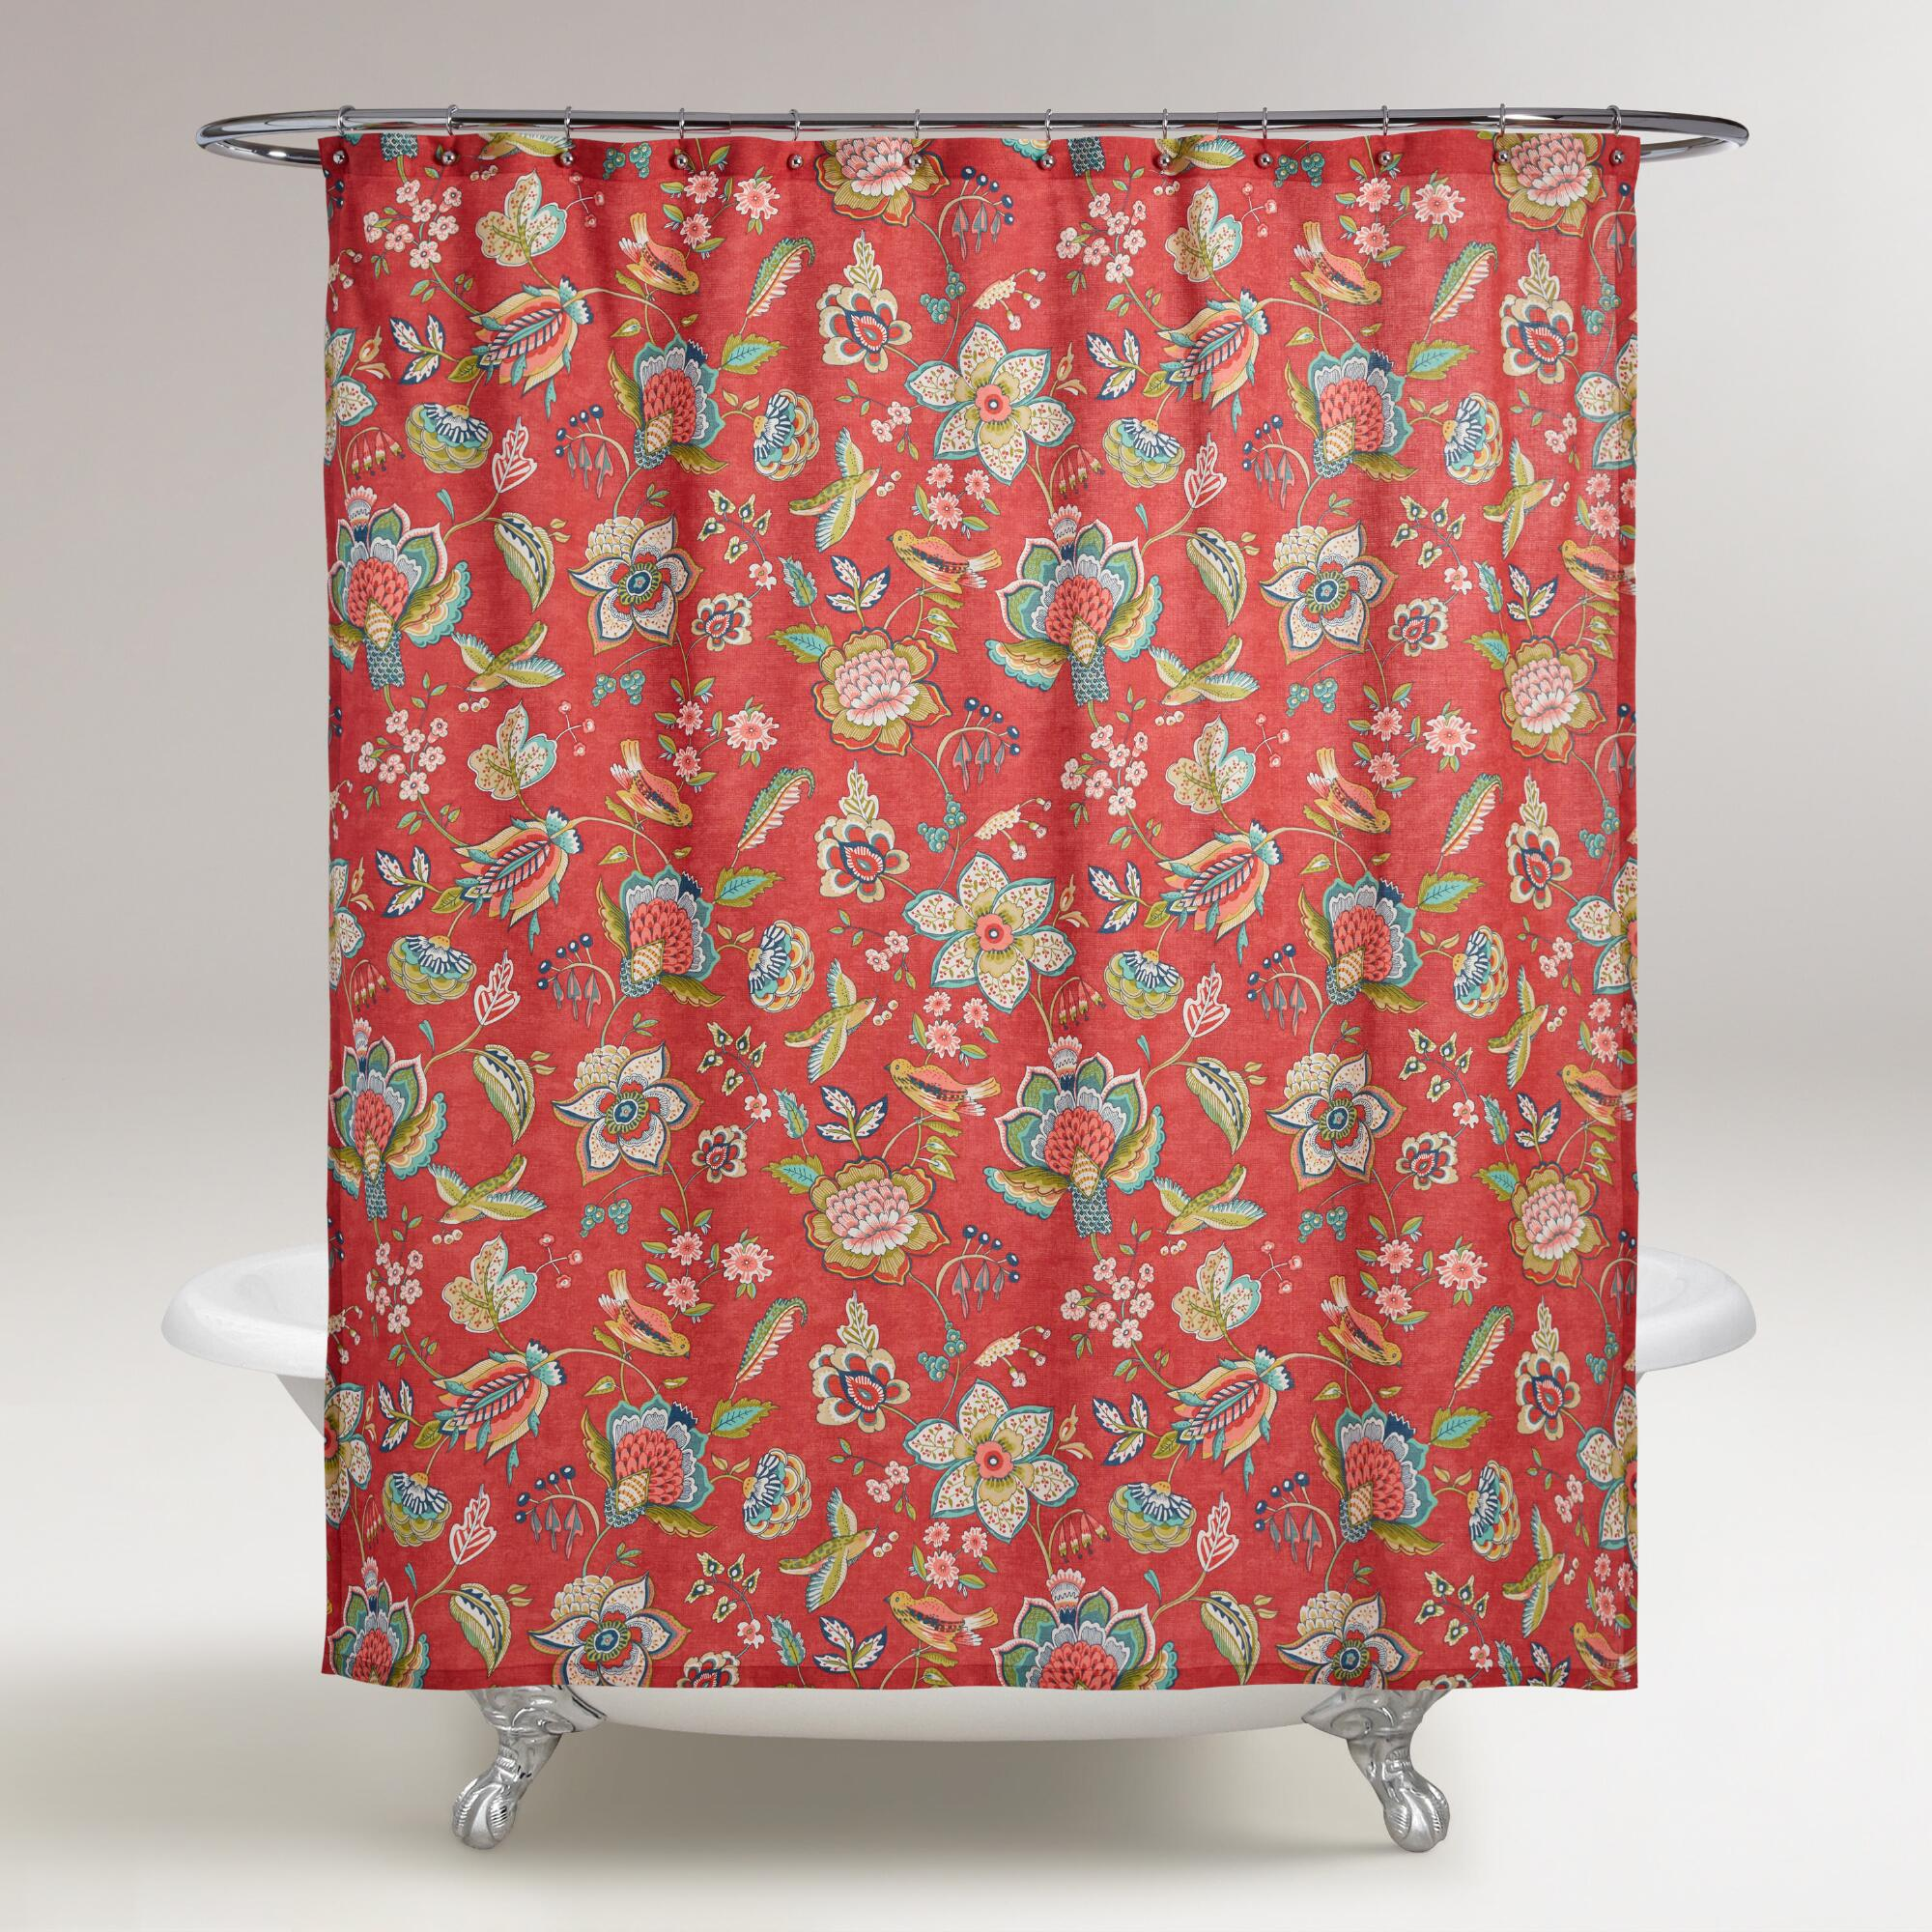 shower curtain coral coral geo shower curtain world market shower  - coral floral natasha shower curtain world market